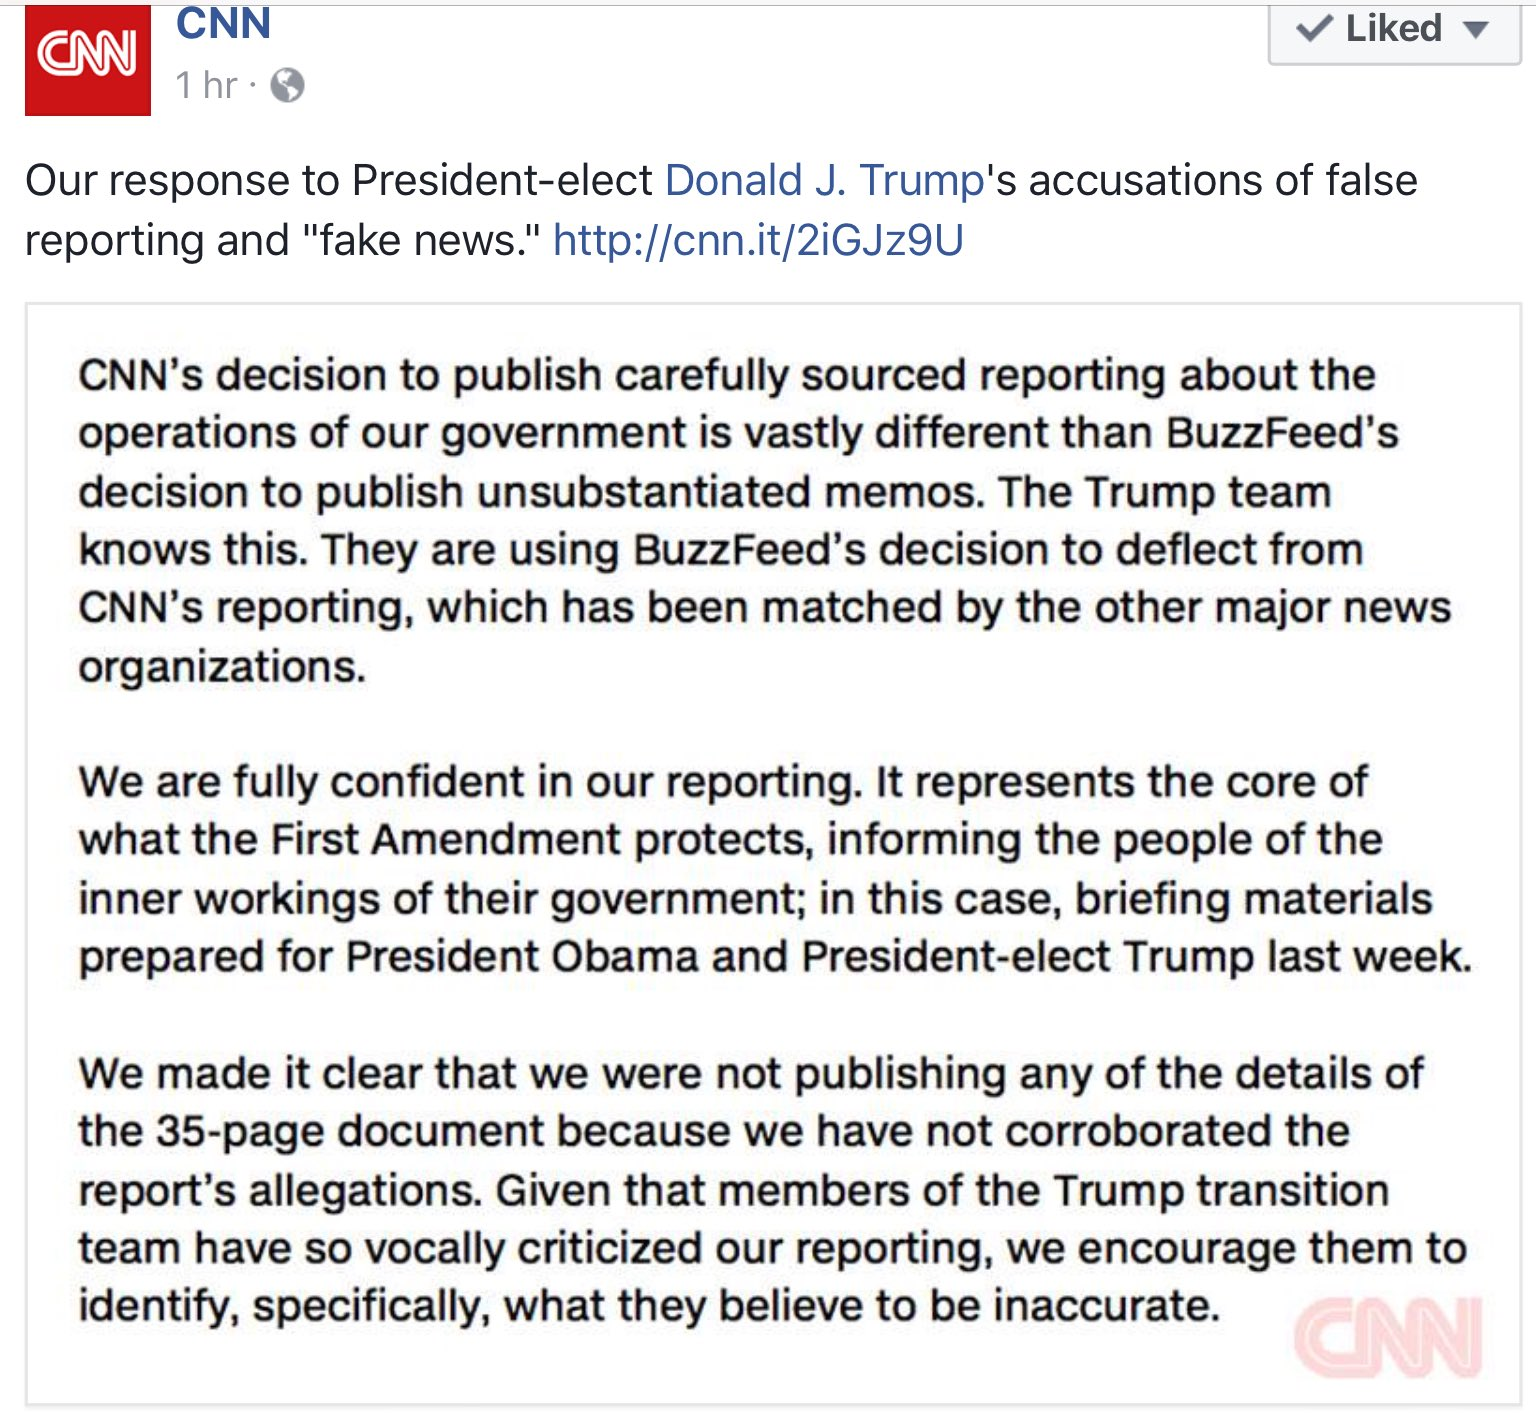 Following @realDonaldTrump's behavior toward Jim @Acosta during the press conference, @CNN published this response: https://t.co/Kul2ySY36s https://t.co/mRQuQlKJsc